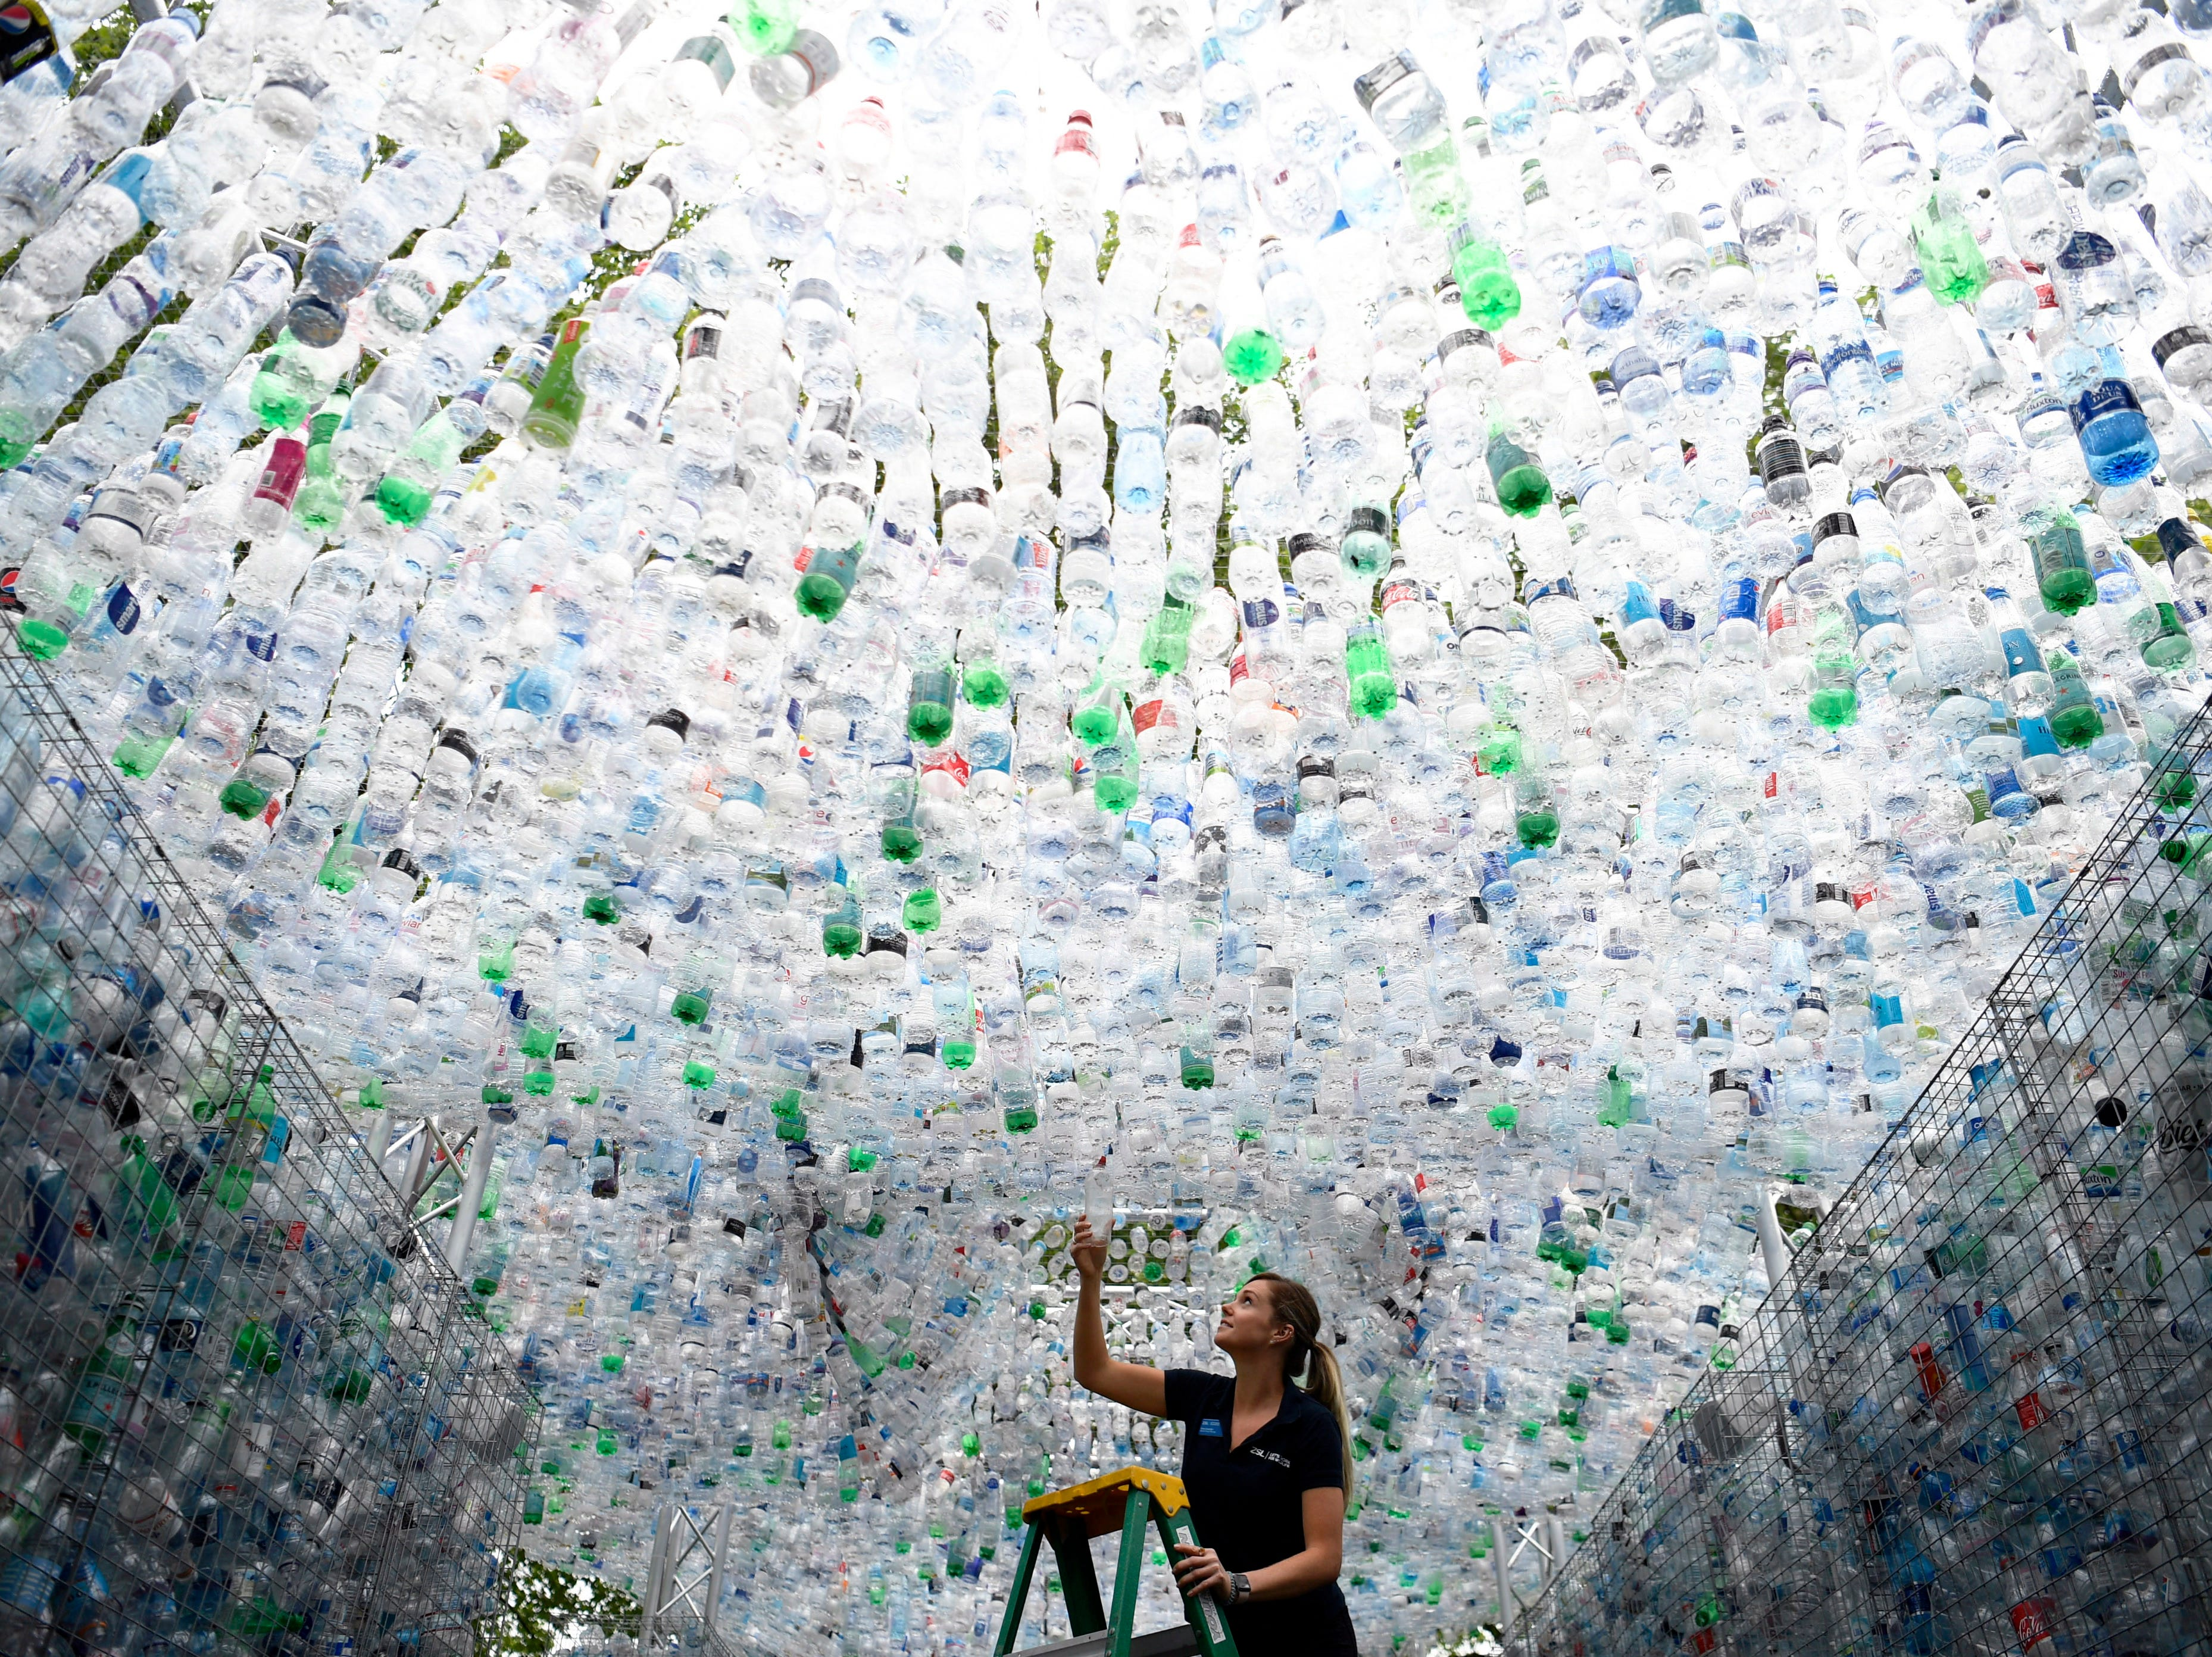 """May 24, 2018: A worker places a finishing touch on the sculpture """"Waste of Space"""" by British artist Nick Wood at the London Zoo. """"Waste of Space"""" is an installation made from 15,000 discarded single use bottles collected from London's waterways. The sculpture represents the amount of single use bottle that are purchased every minute in Britain."""